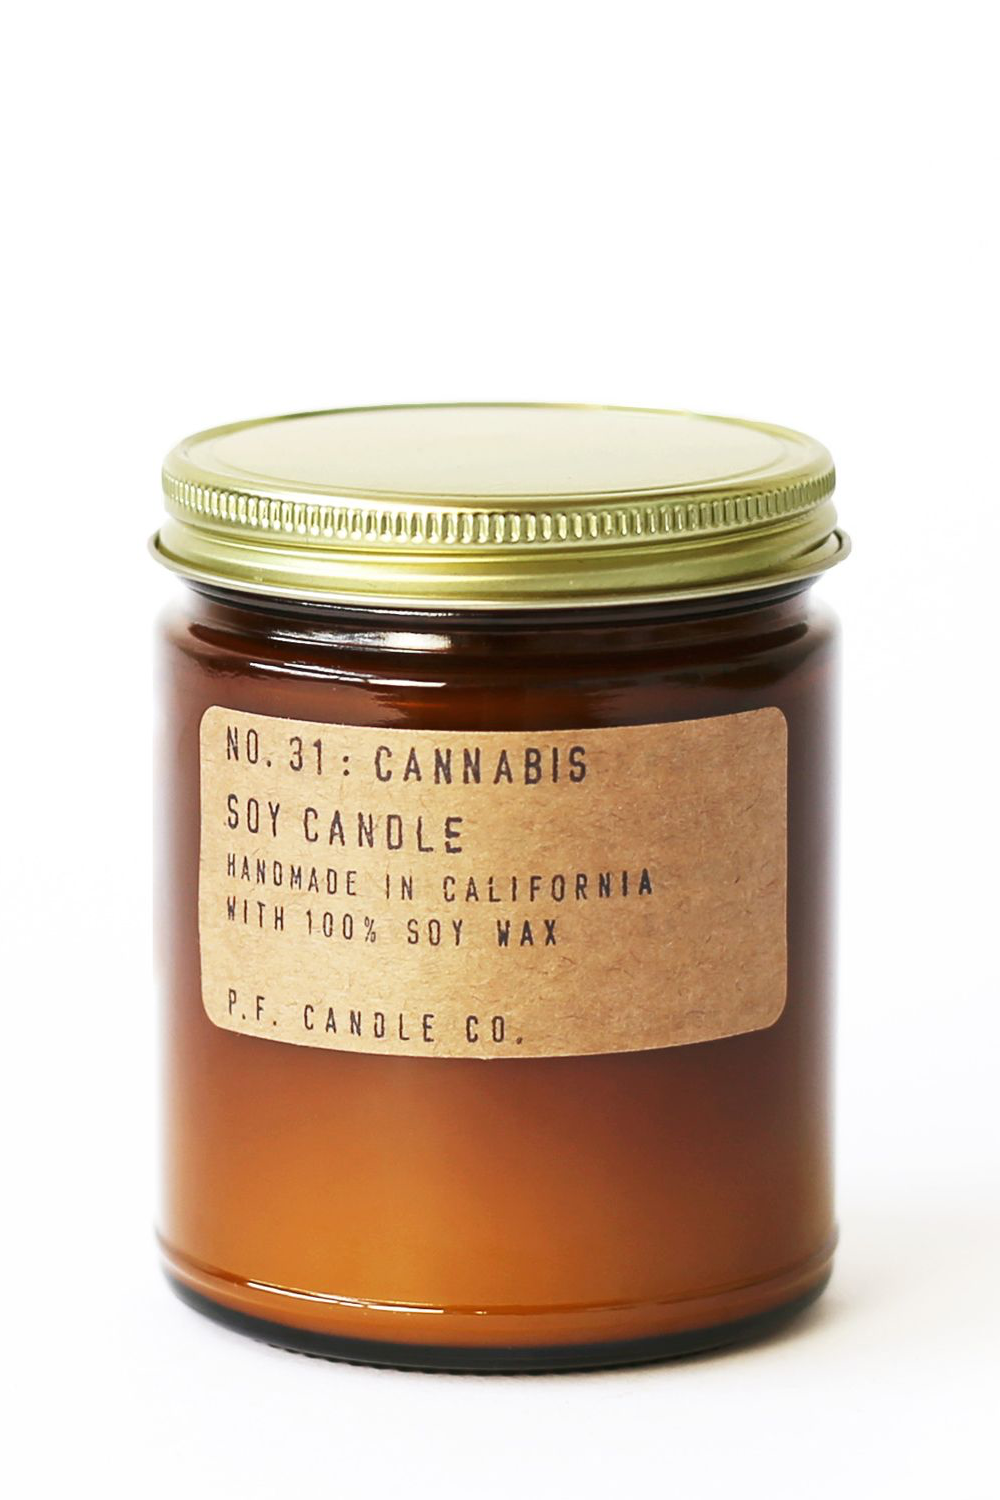 P.F. Candle Co. Cannabis Soy Candle